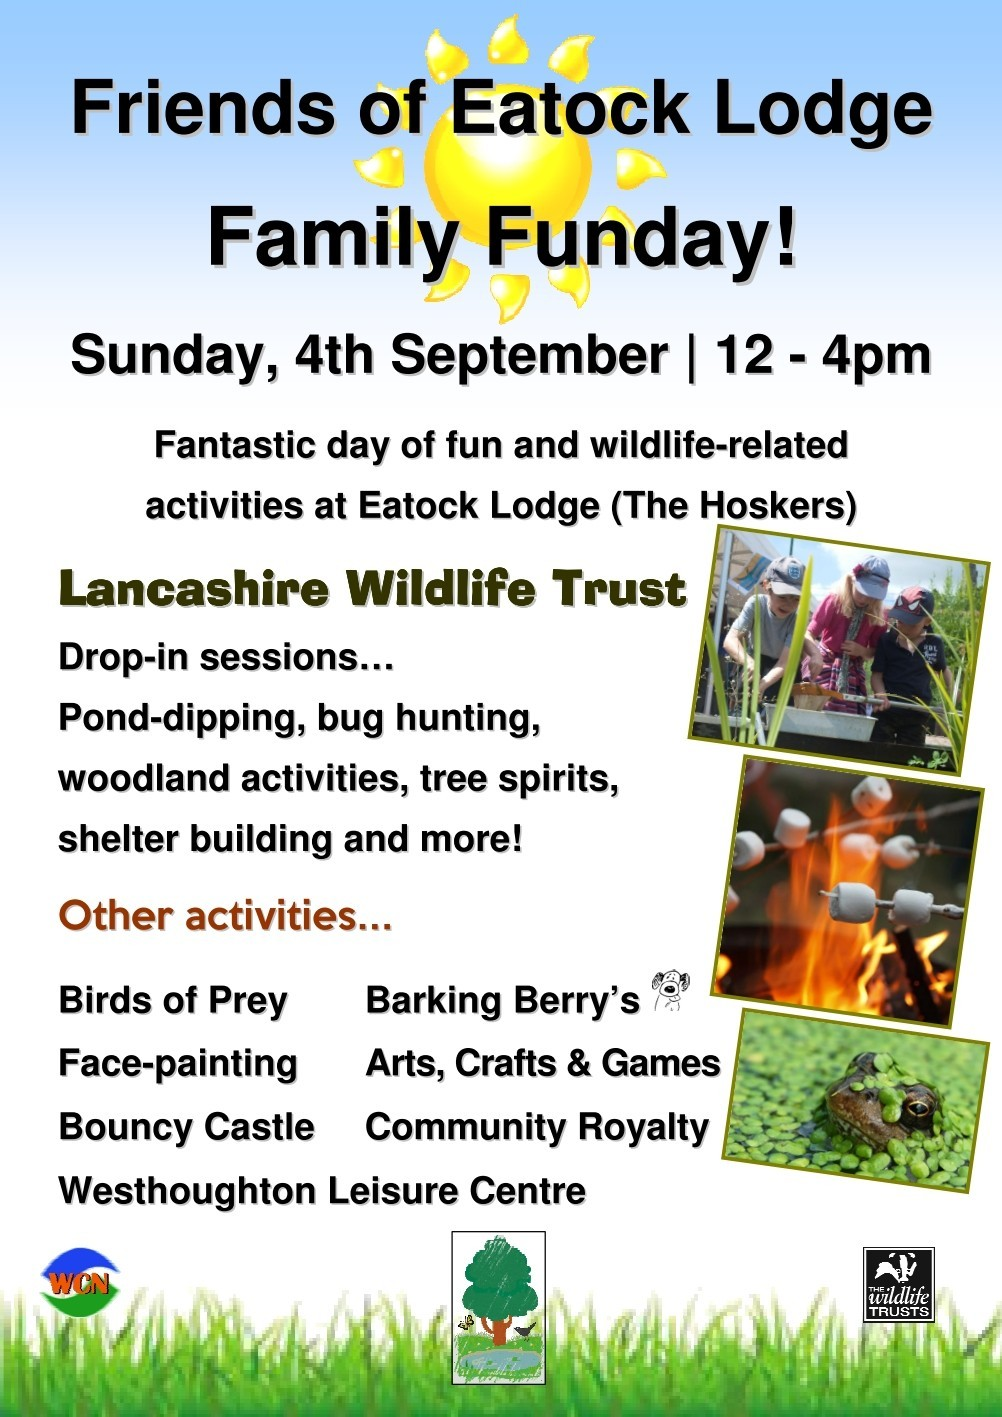 Friends of Eatock Lodge Family Funday 2016 - join us for end of summer activities at Local Nature Reserve.